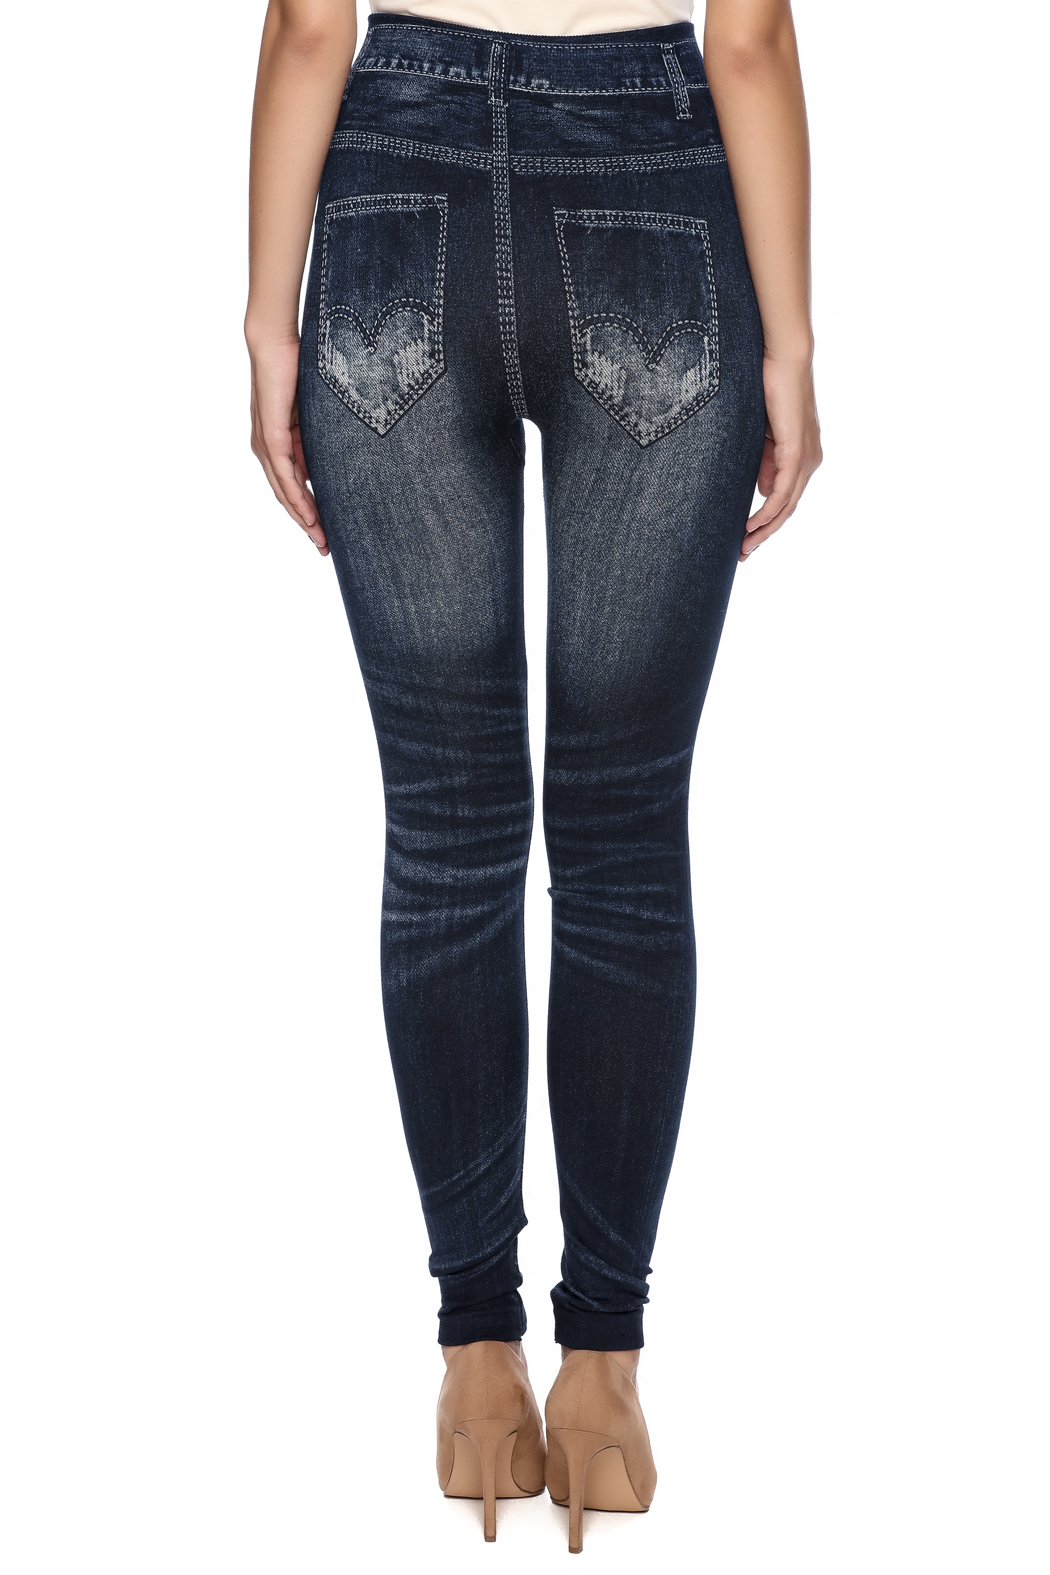 b607c5c7c91e3 Coco + Carmen Faux Denim Leggings from Wisconsin by Ava's a Posh ...